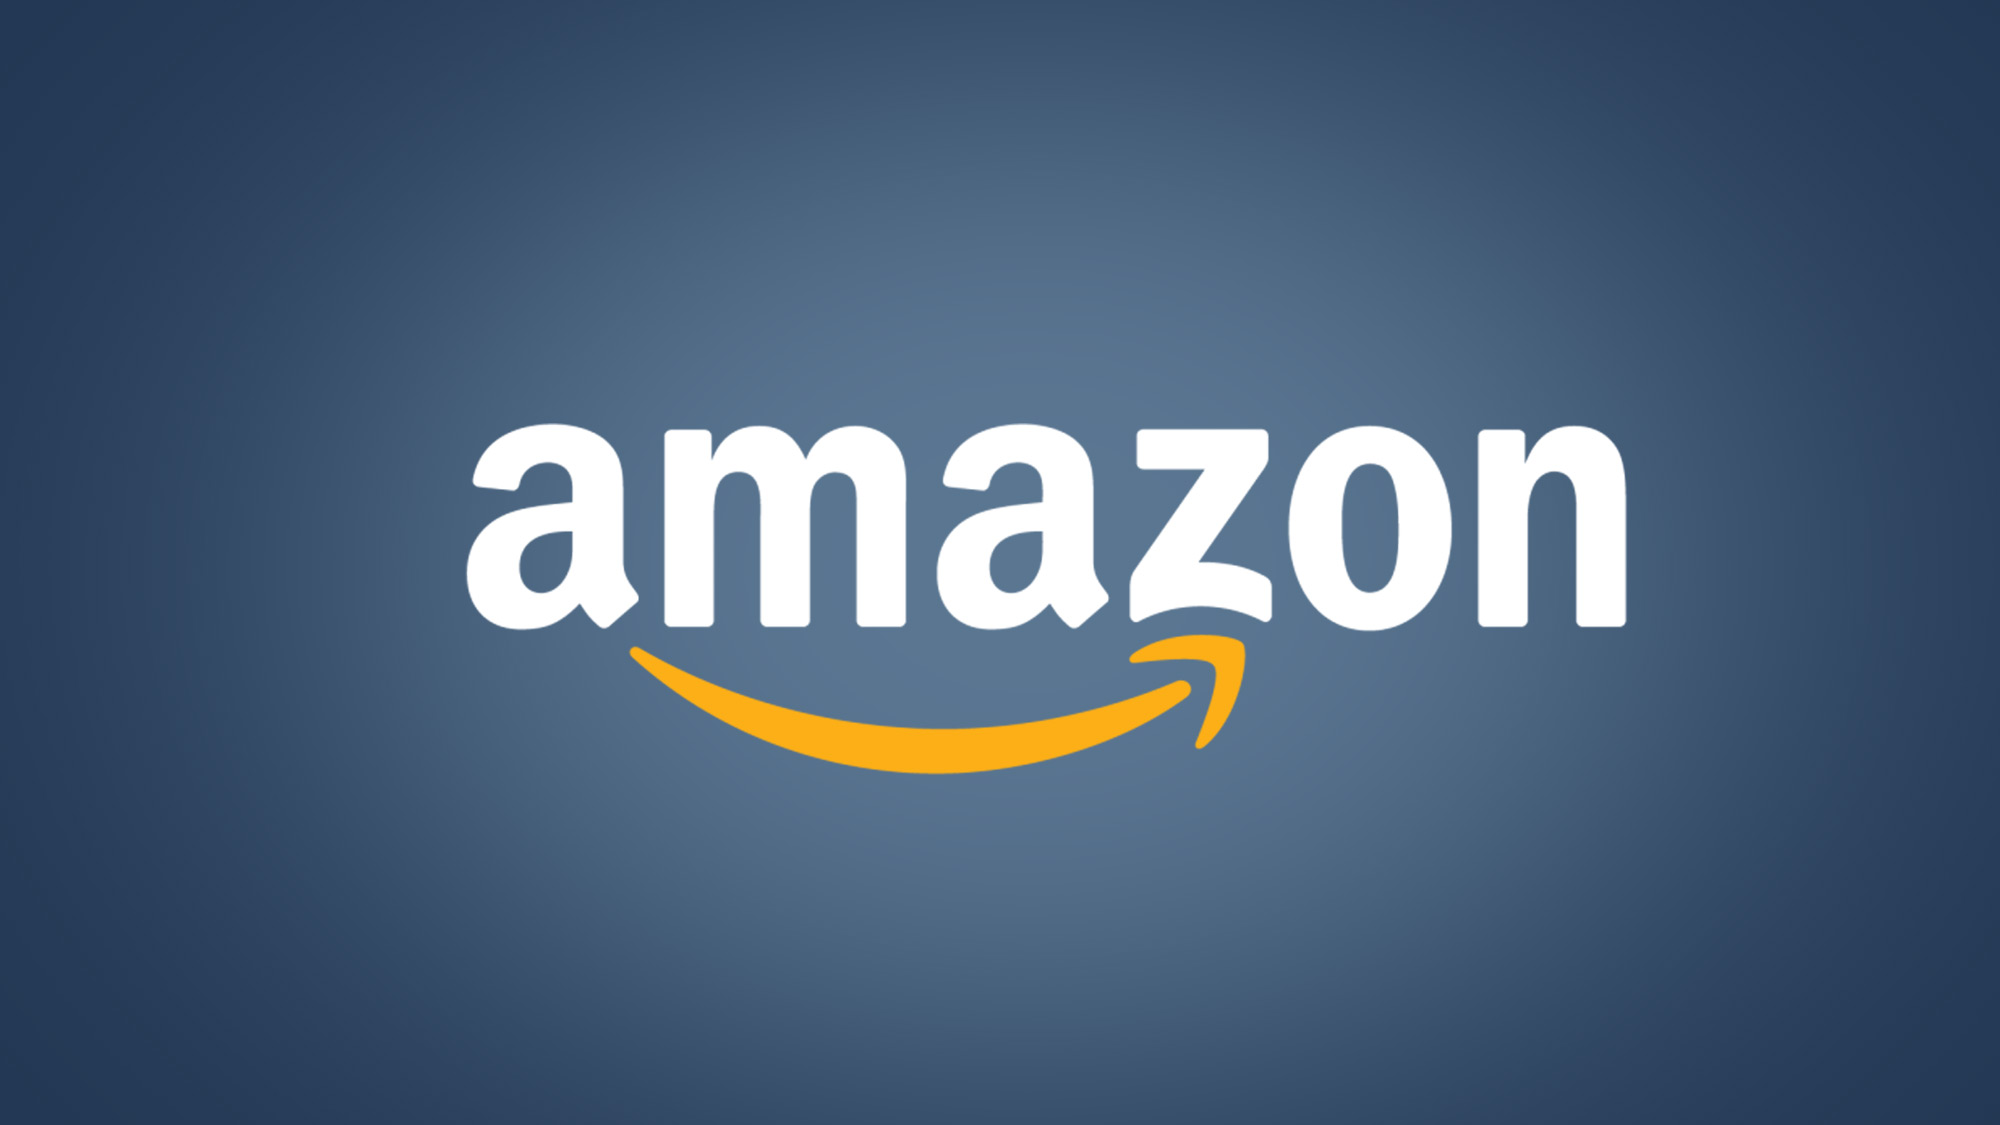 Amazon Acquires a Team of Satellite Internet Experts from Facebook, Inc. as it continues to Vie with SpaceX in the Nascent Satellite Internet Market